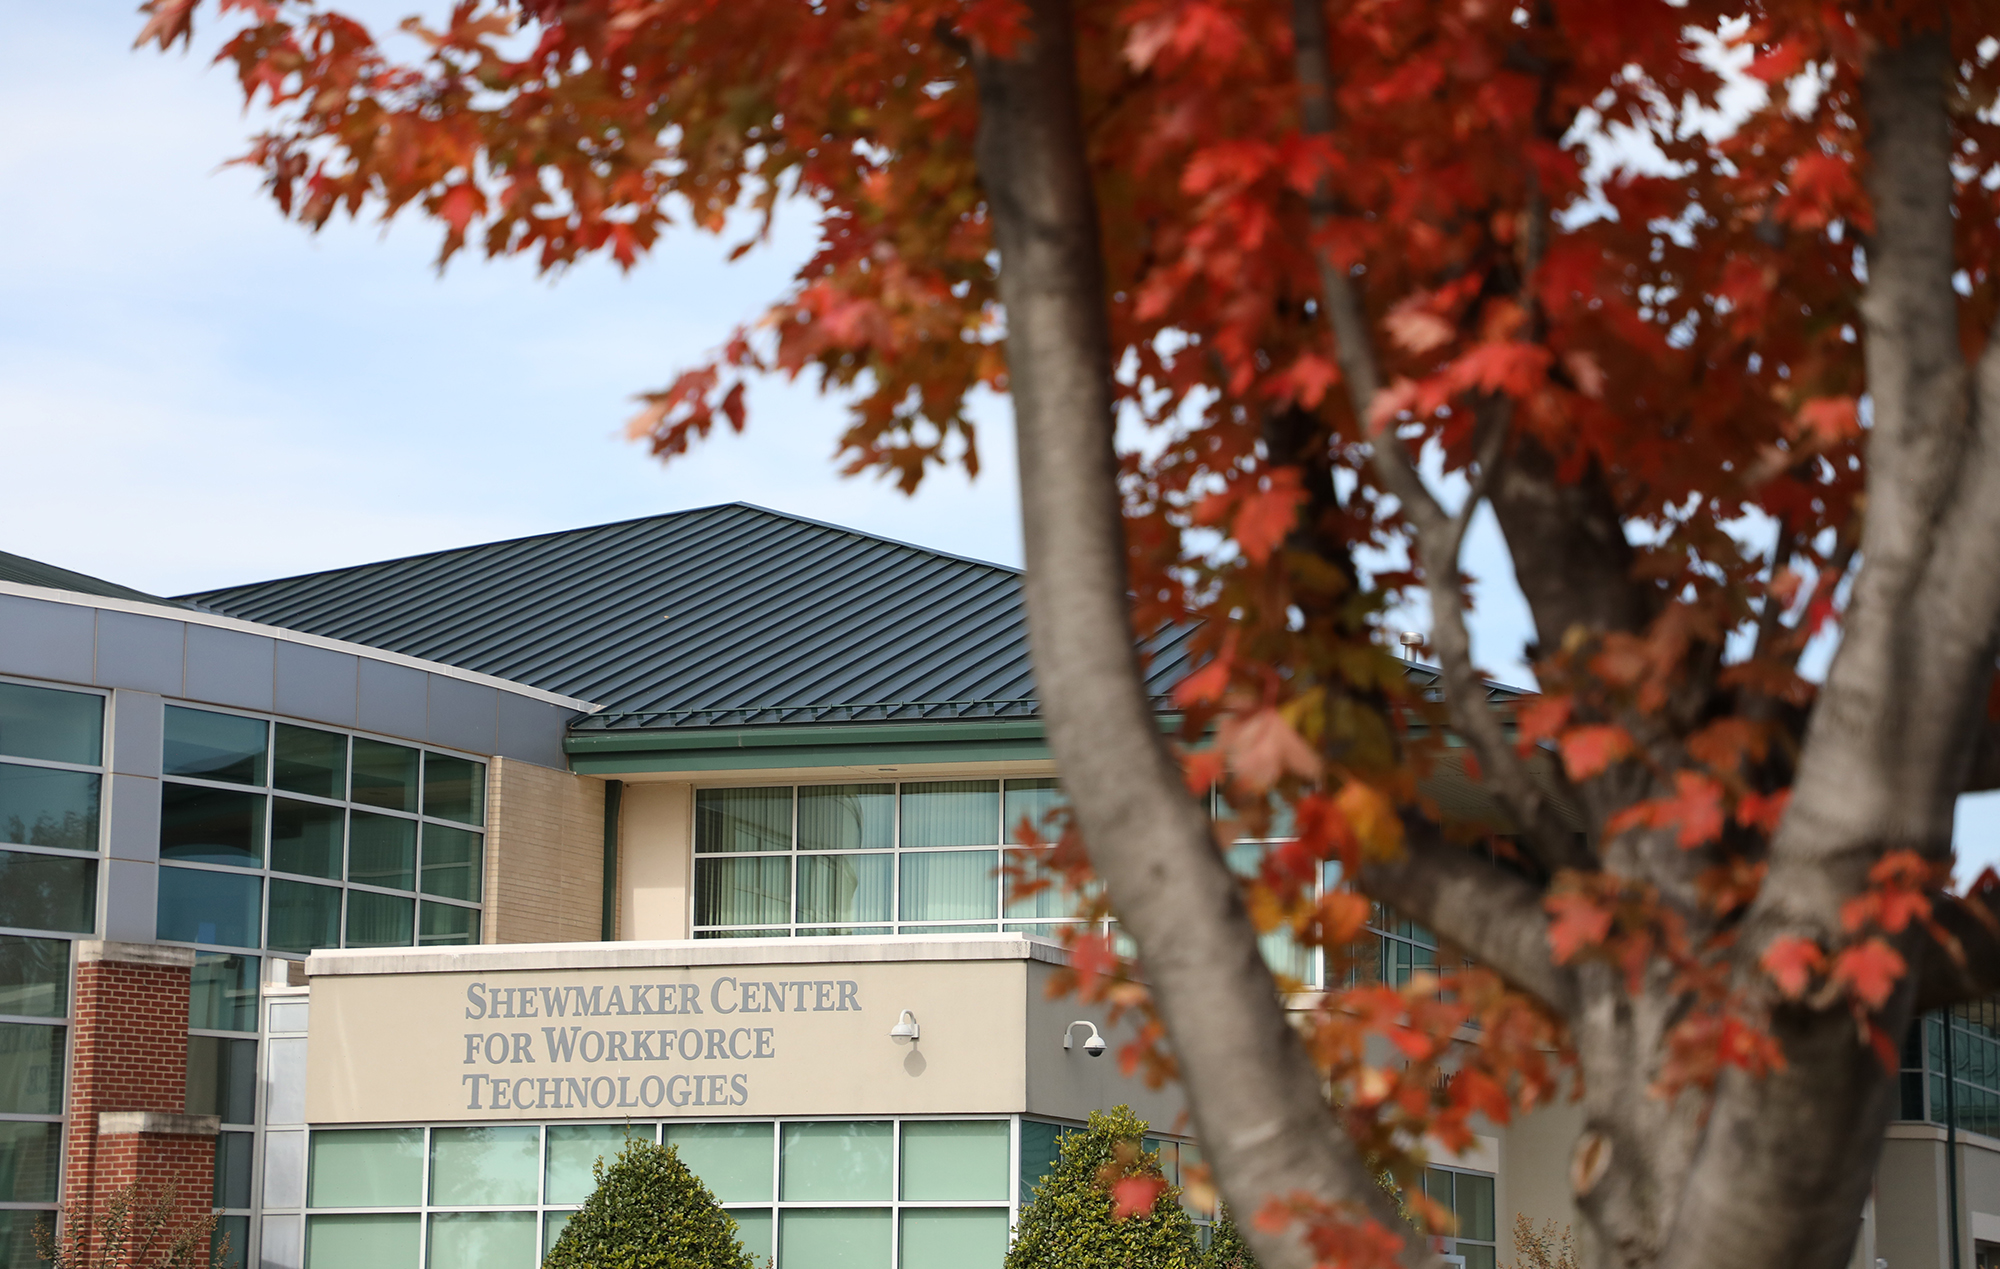 Shewmaker Center for Workforce Technologies